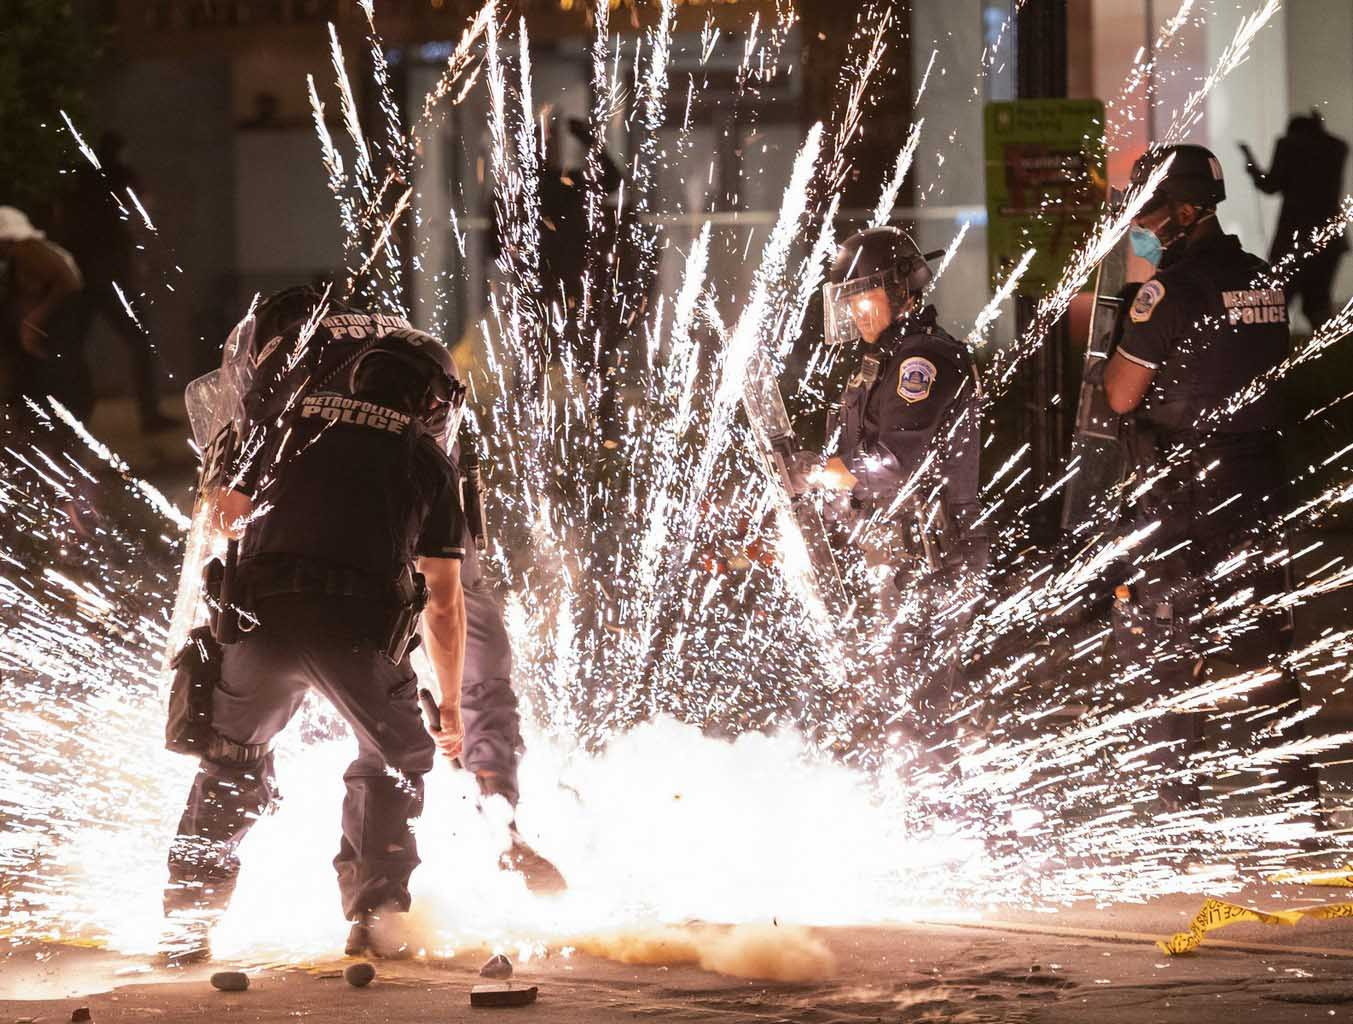 """A firecracker thrown by protesters explodes under police one block from the White House on May 30, 2020 in Washington DC, during a protest over the death of George Floyd, an unarmed black man, who died after a Minneapolis  police officer kneeled on his neck for several minutes. - Clashes broke out and major cities imposed curfews as America began another night of unrest Saturday with angry demonstrators ignoring warnings from President Donald Trump that his government would stop violent protests over police brutality """"cold."""" AFP/Andrew-Caballero Reynolds"""